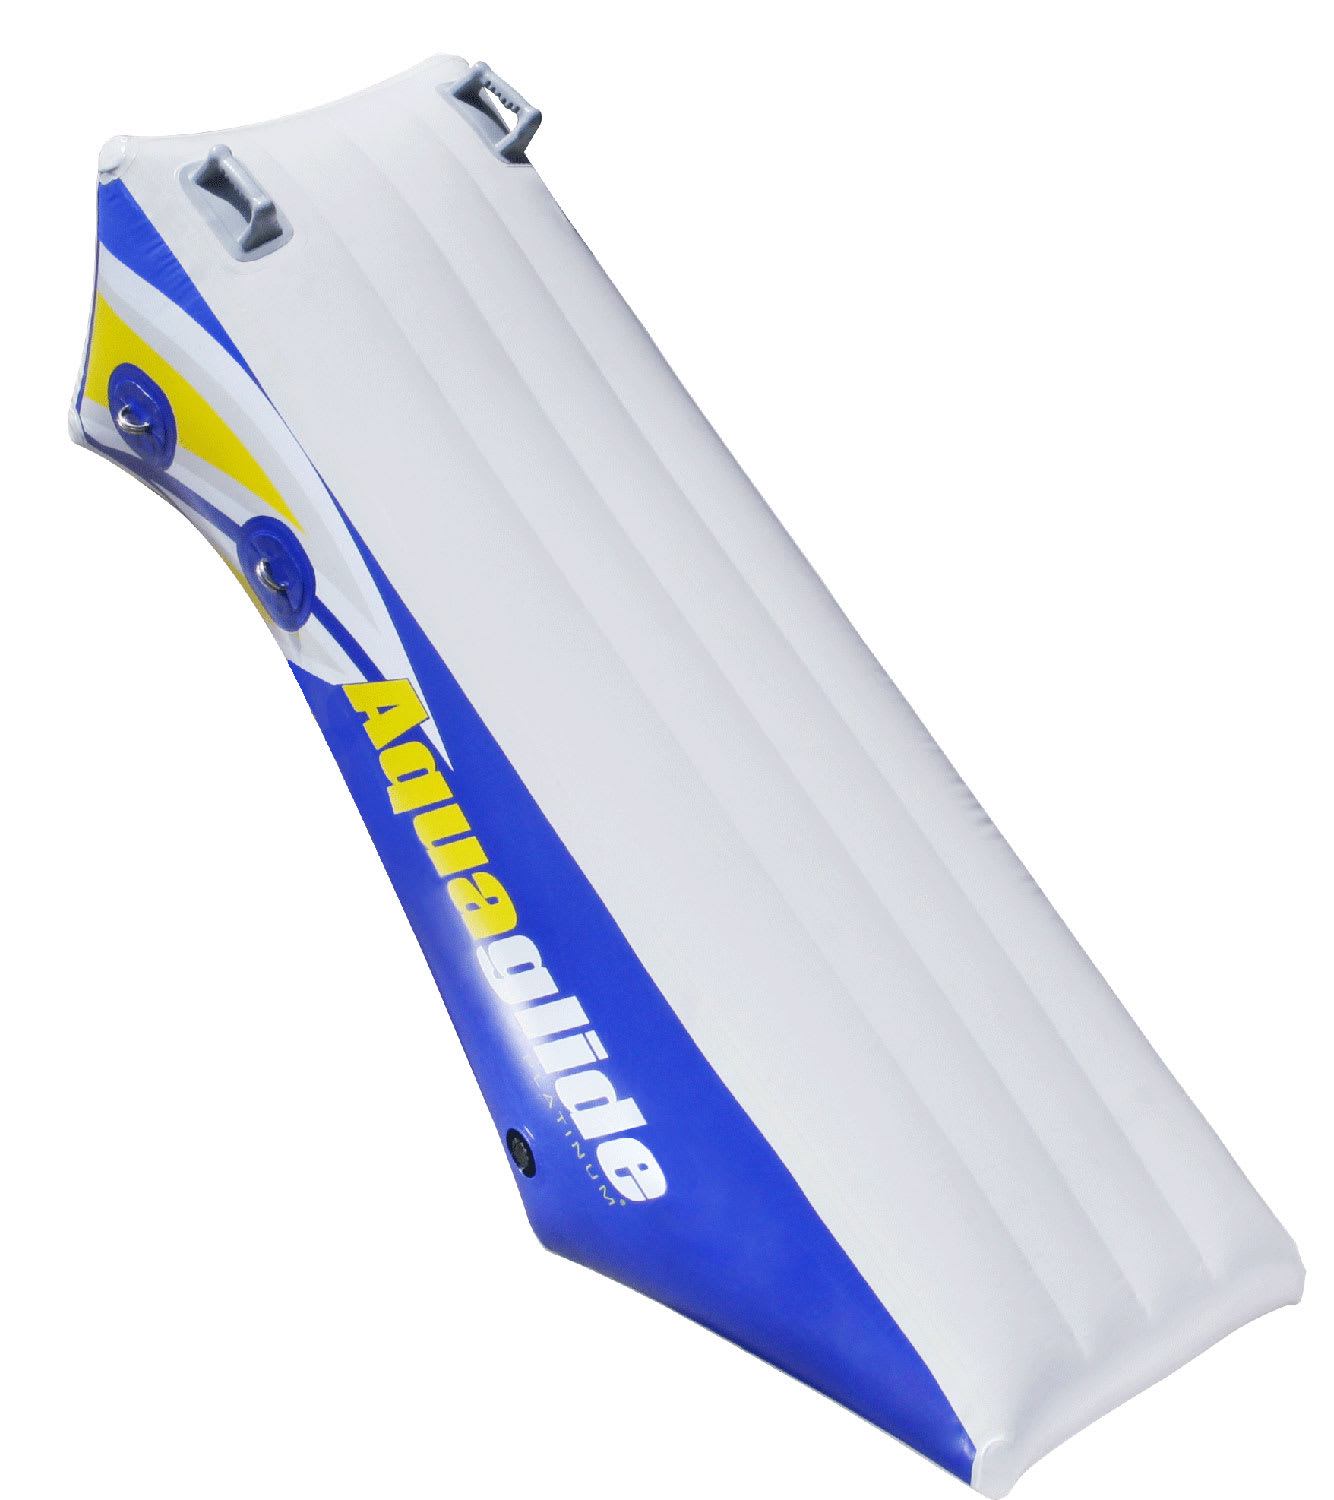 Click here for Aquaglide Bouncer Slide 12' prices